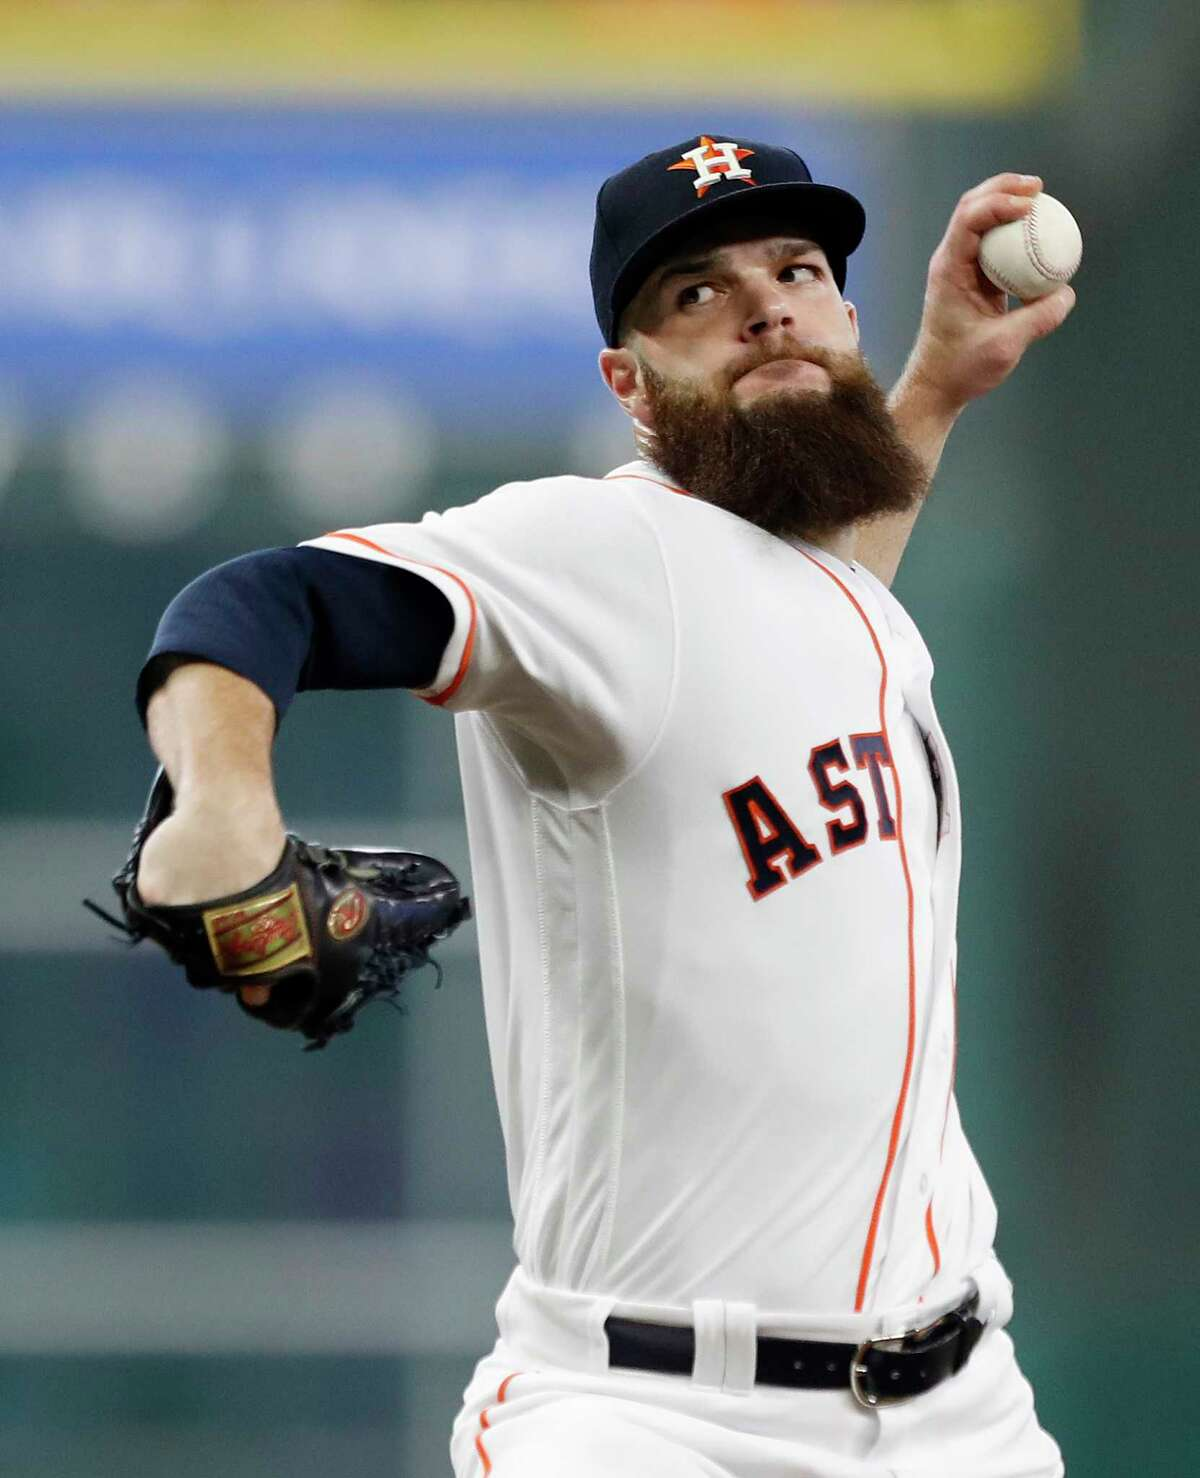 Houston Astros starting pitcher Dallas Keuchel (60) pitches during the first inning of an MLB baseball game at Minute Maid Park, Saturday, Sept. 16, 2017, in Houston.